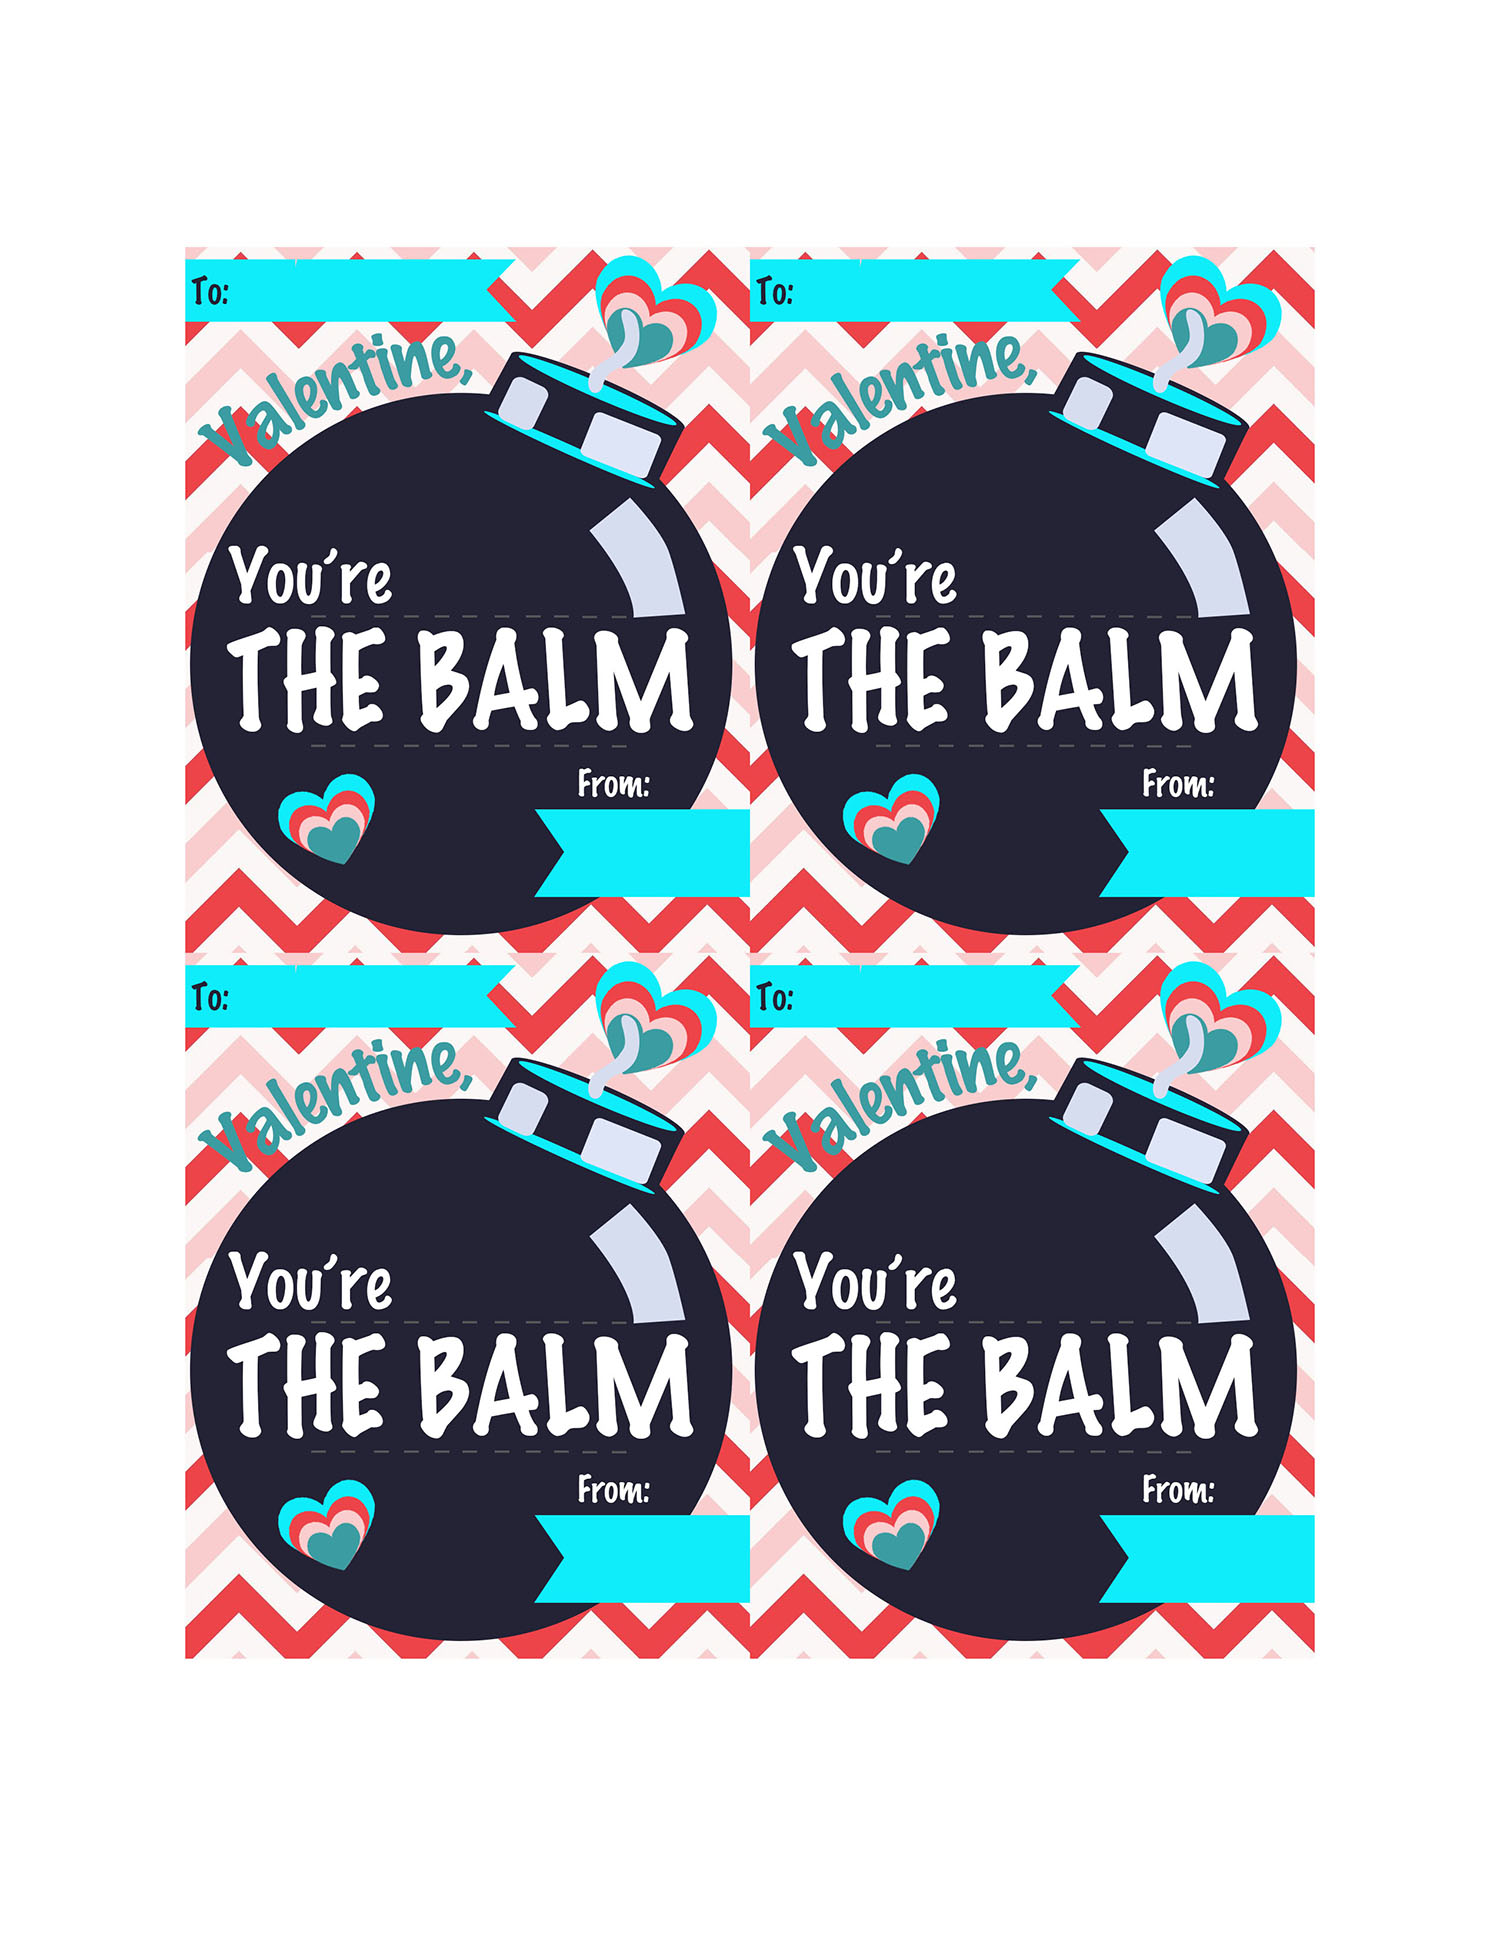 photograph about You're the Balm Free Printable named Youre The Balm Do-it-yourself Valentine Reward with Cost-free Printable